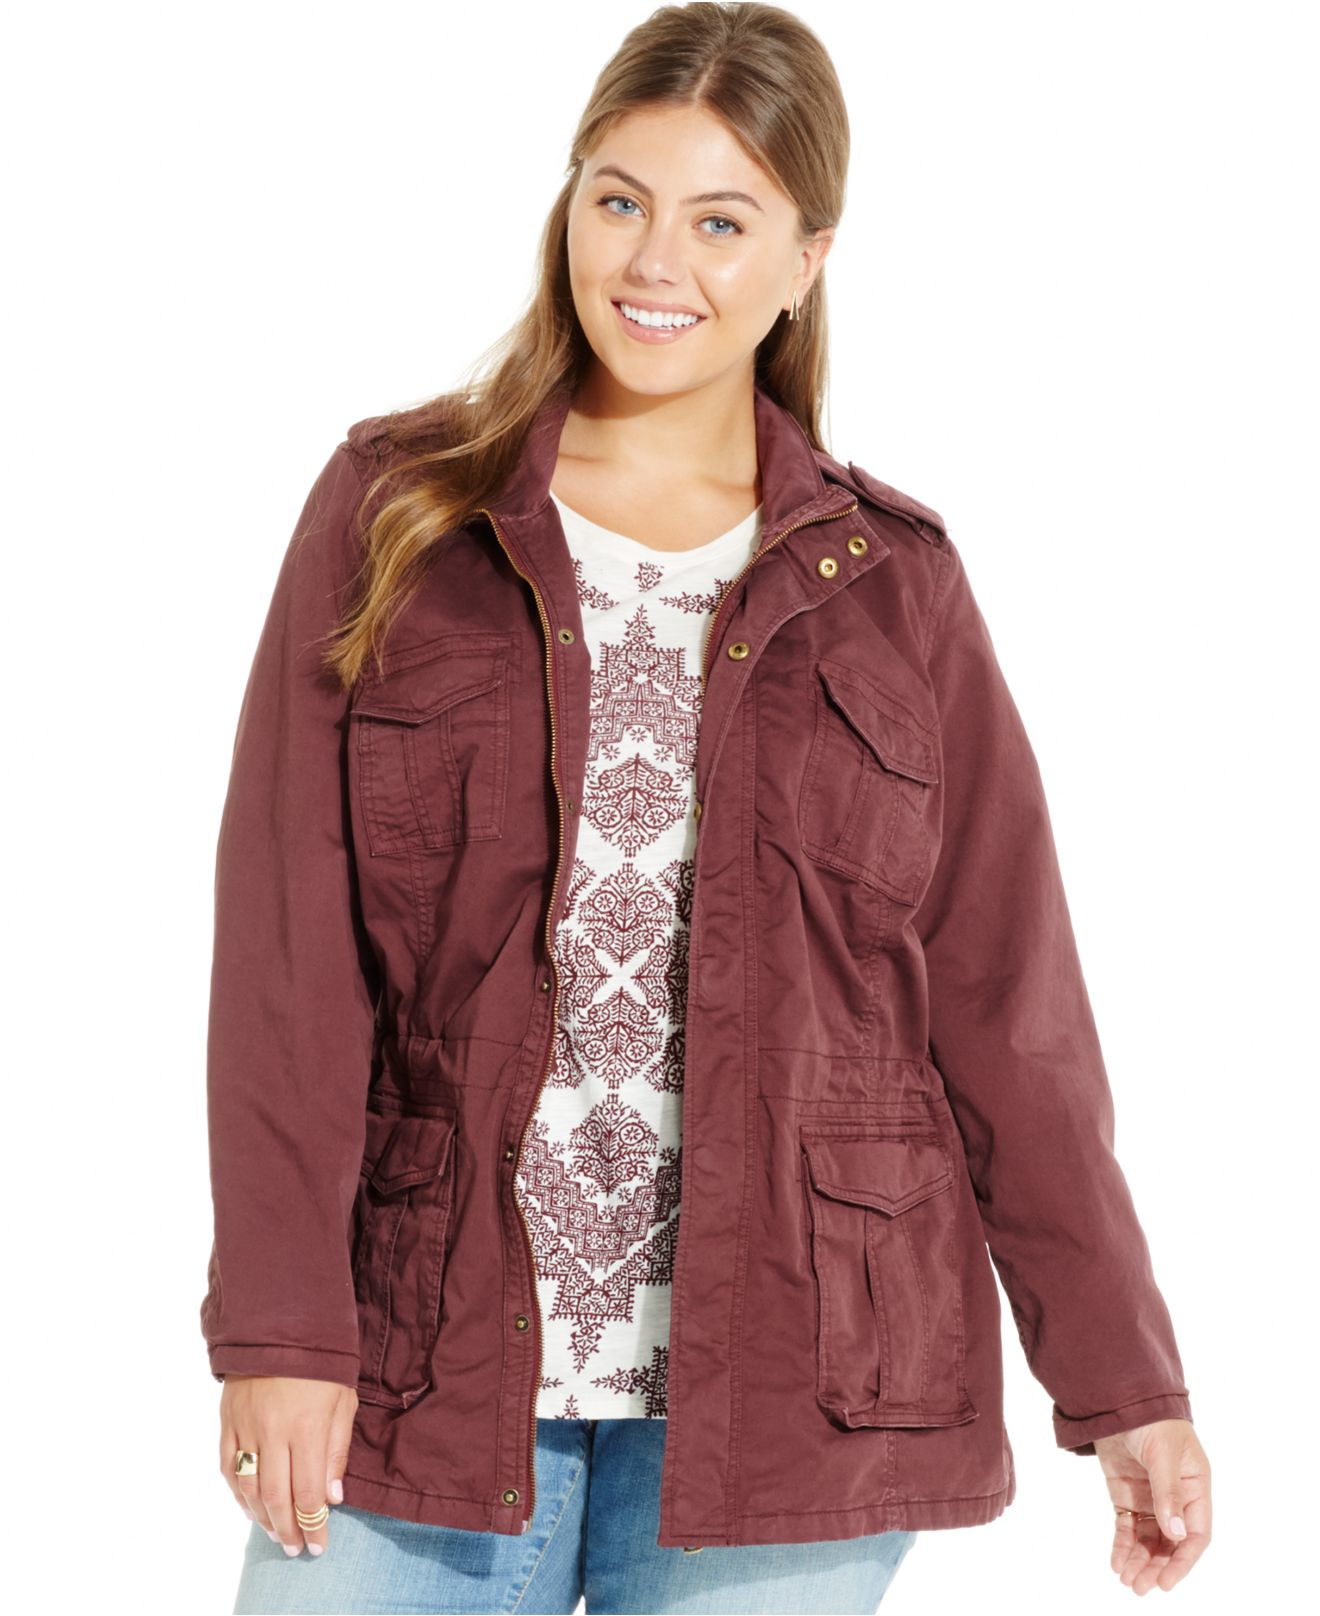 lucky brand lucky brand plus size cotton anorak jacket in purple